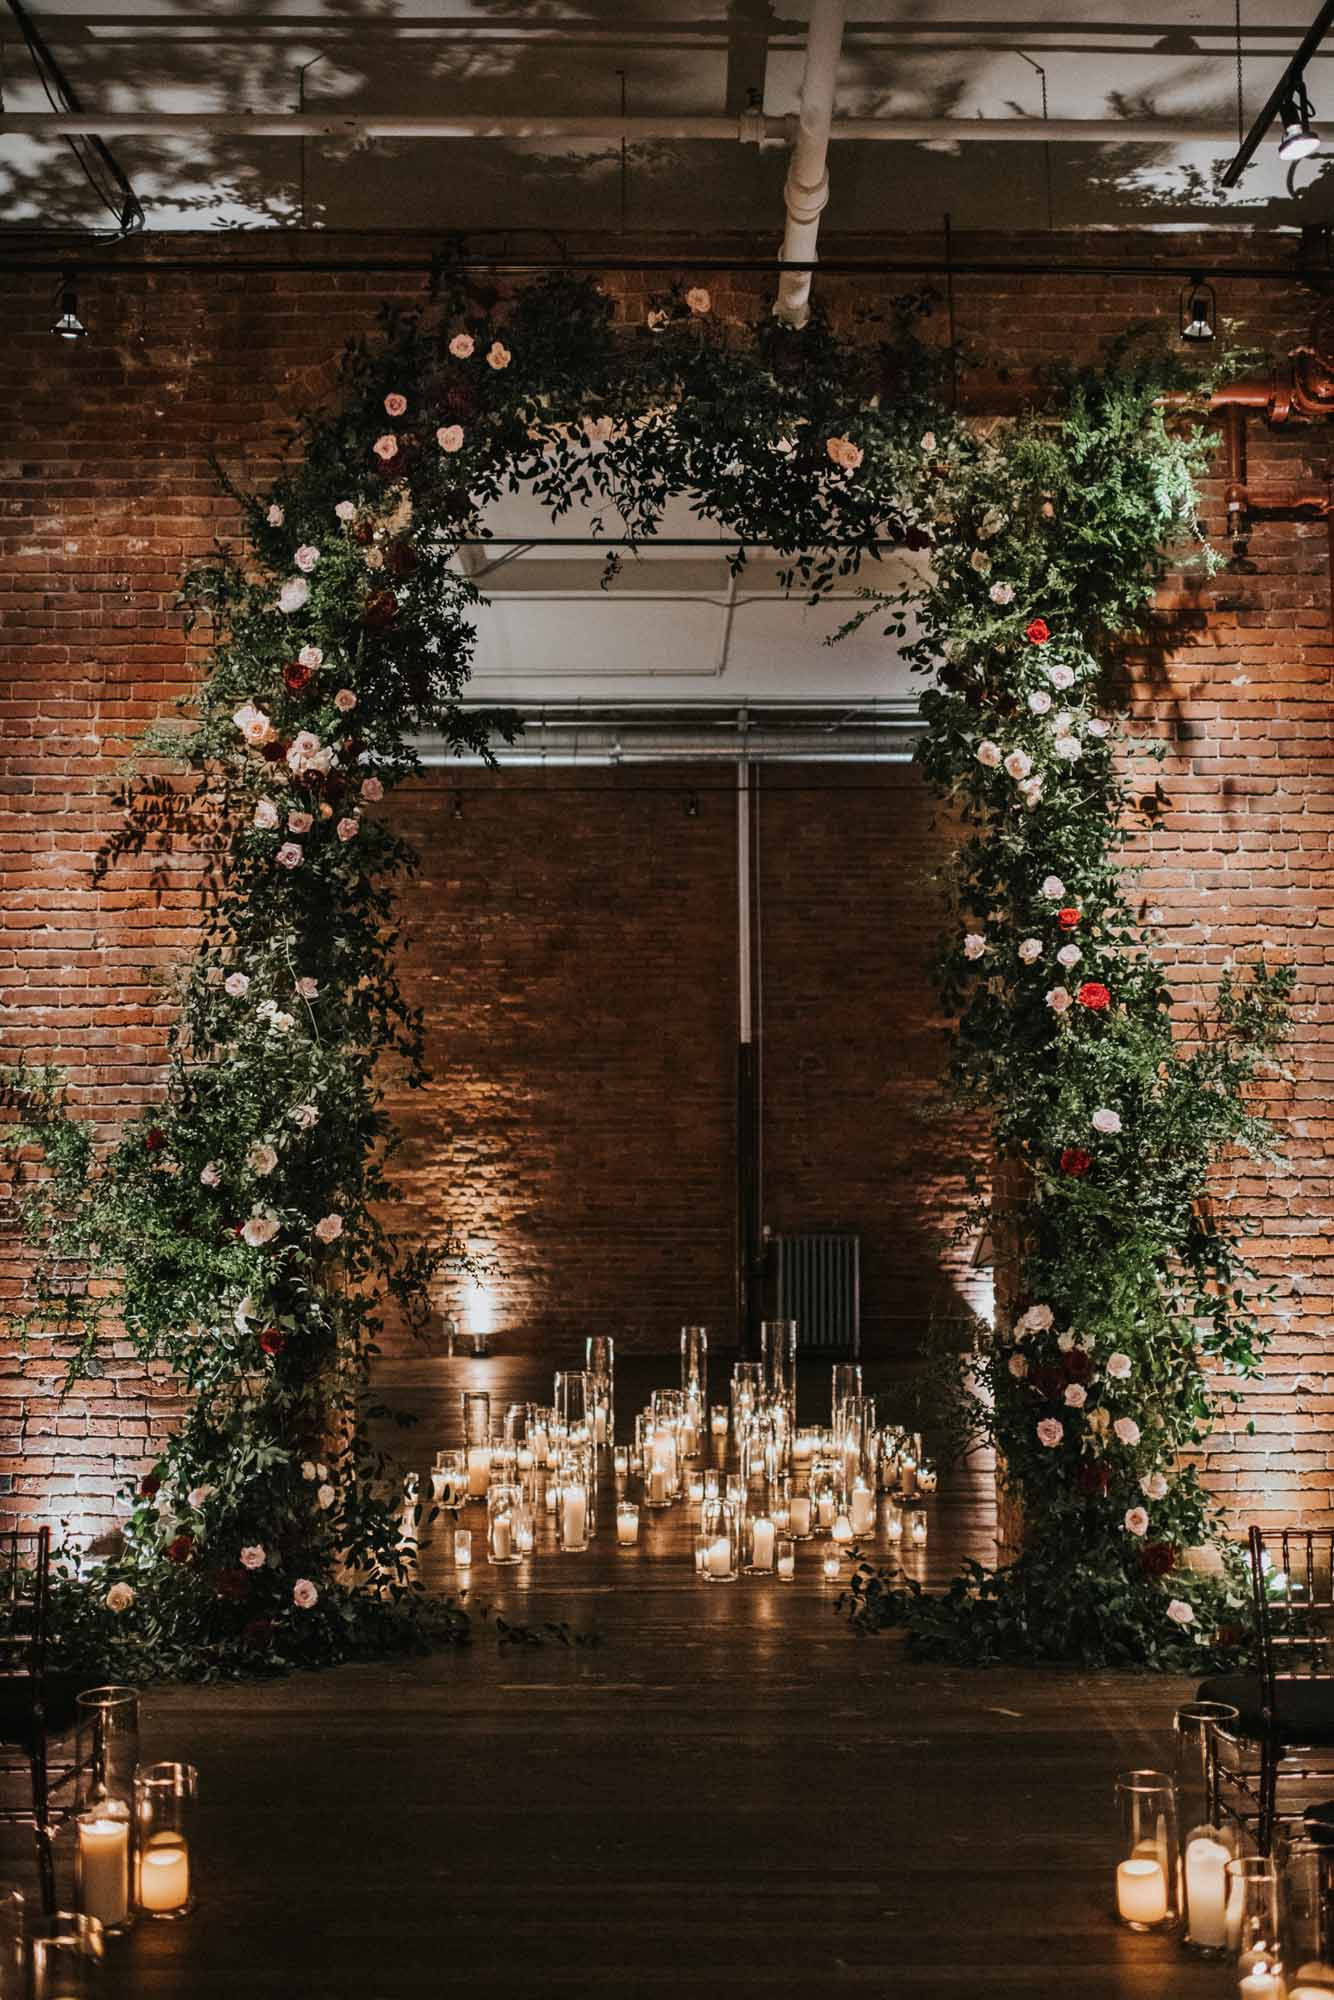 ceremony arch of greenery and roses in brich archway surrounded by candles